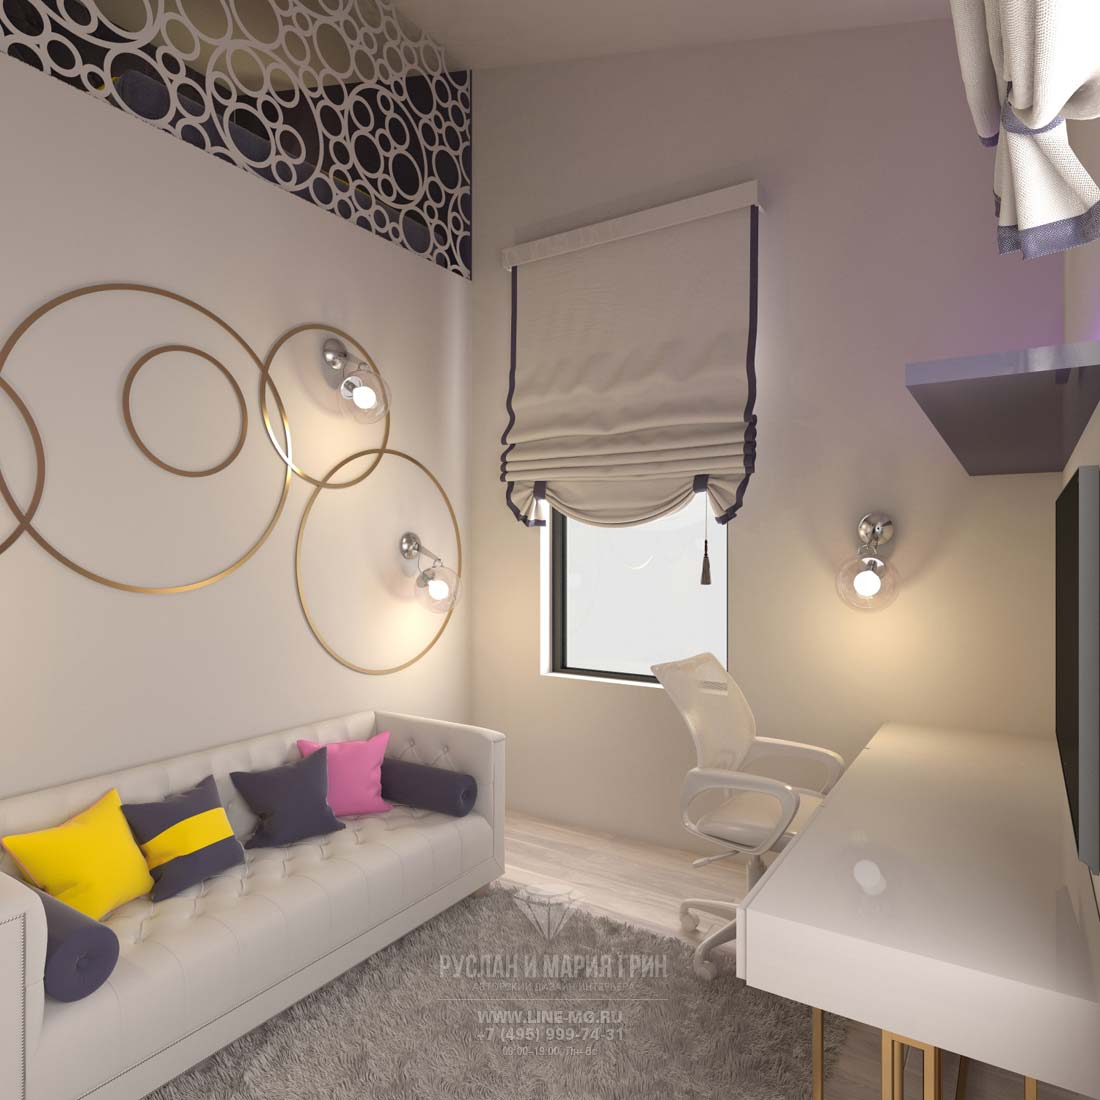 Children's room interior in modern style